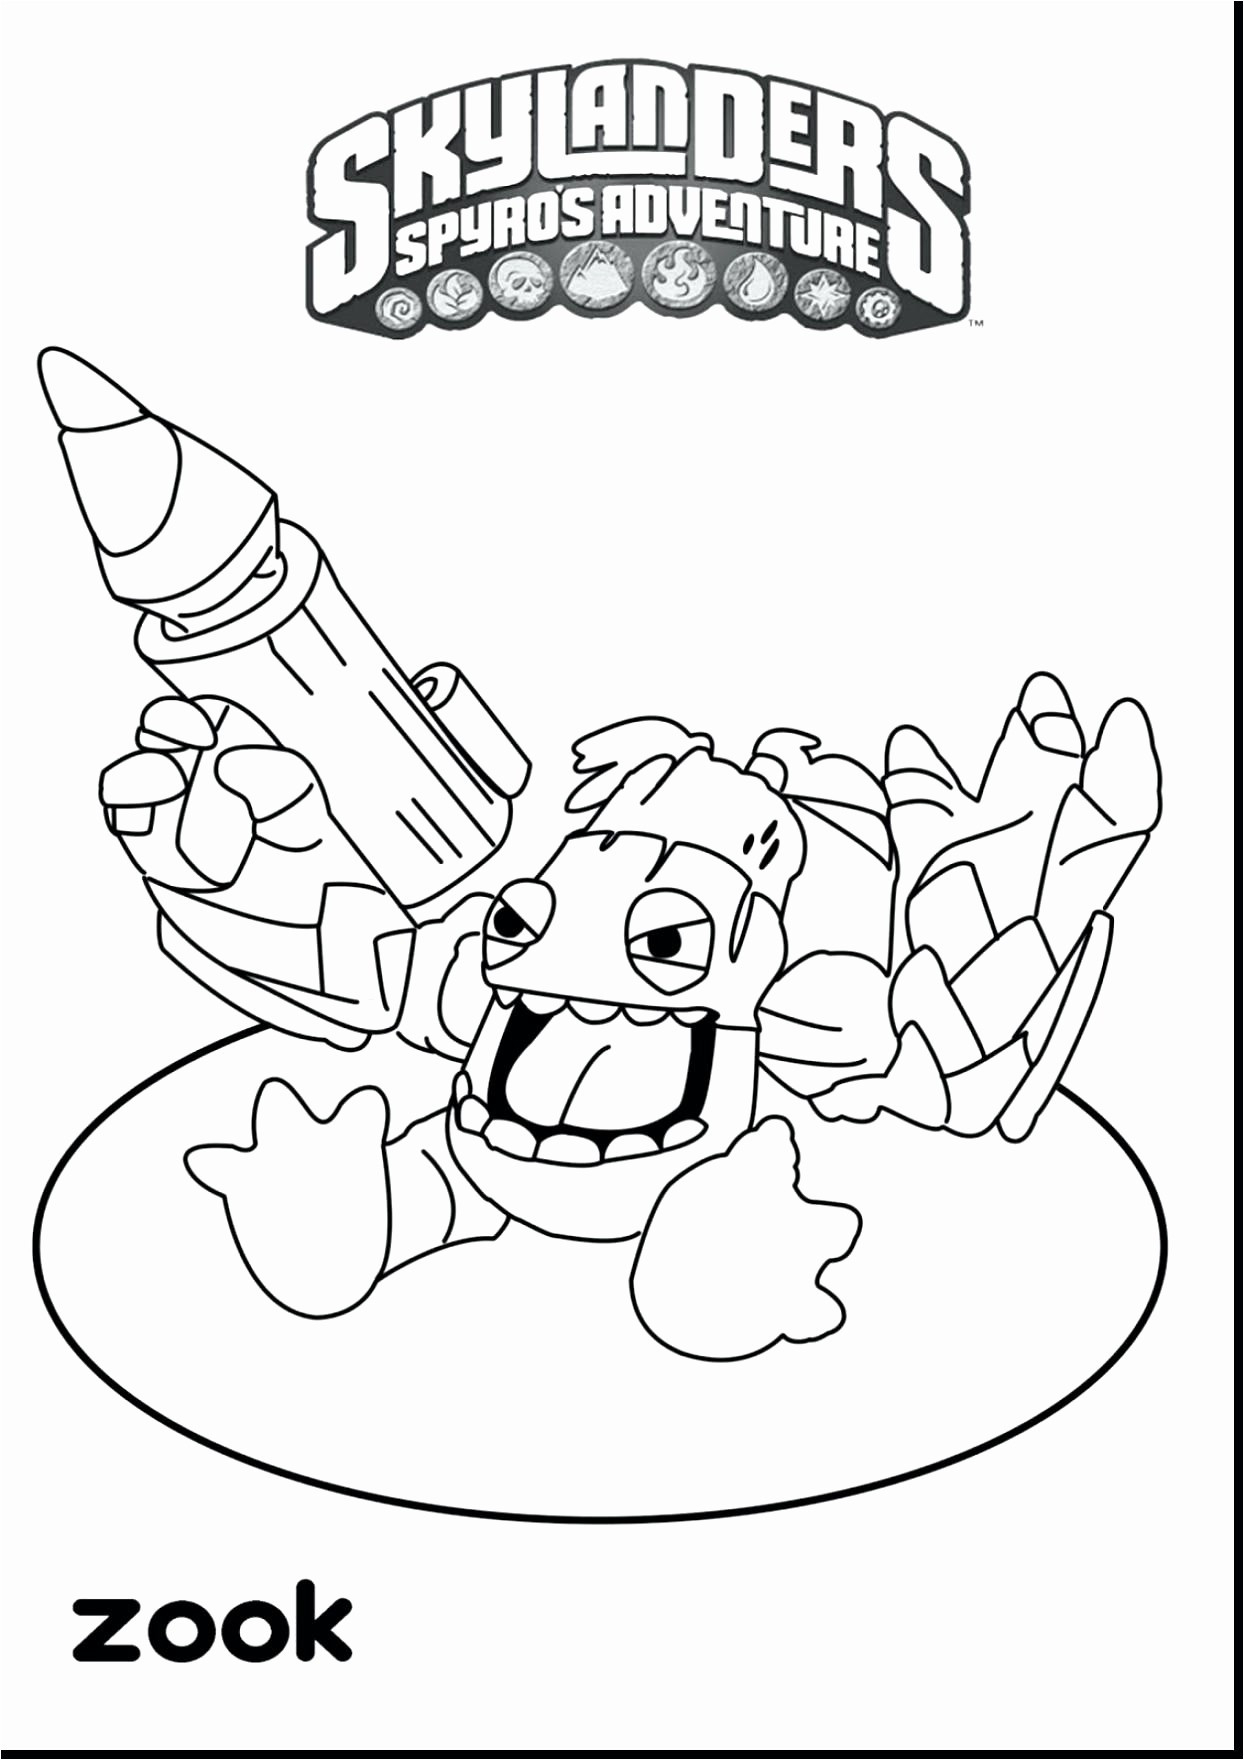 psalm 119 105 coloring pages Download-Psalm 139 Coloring Page Best Present Coloring Sheet Design 3-g